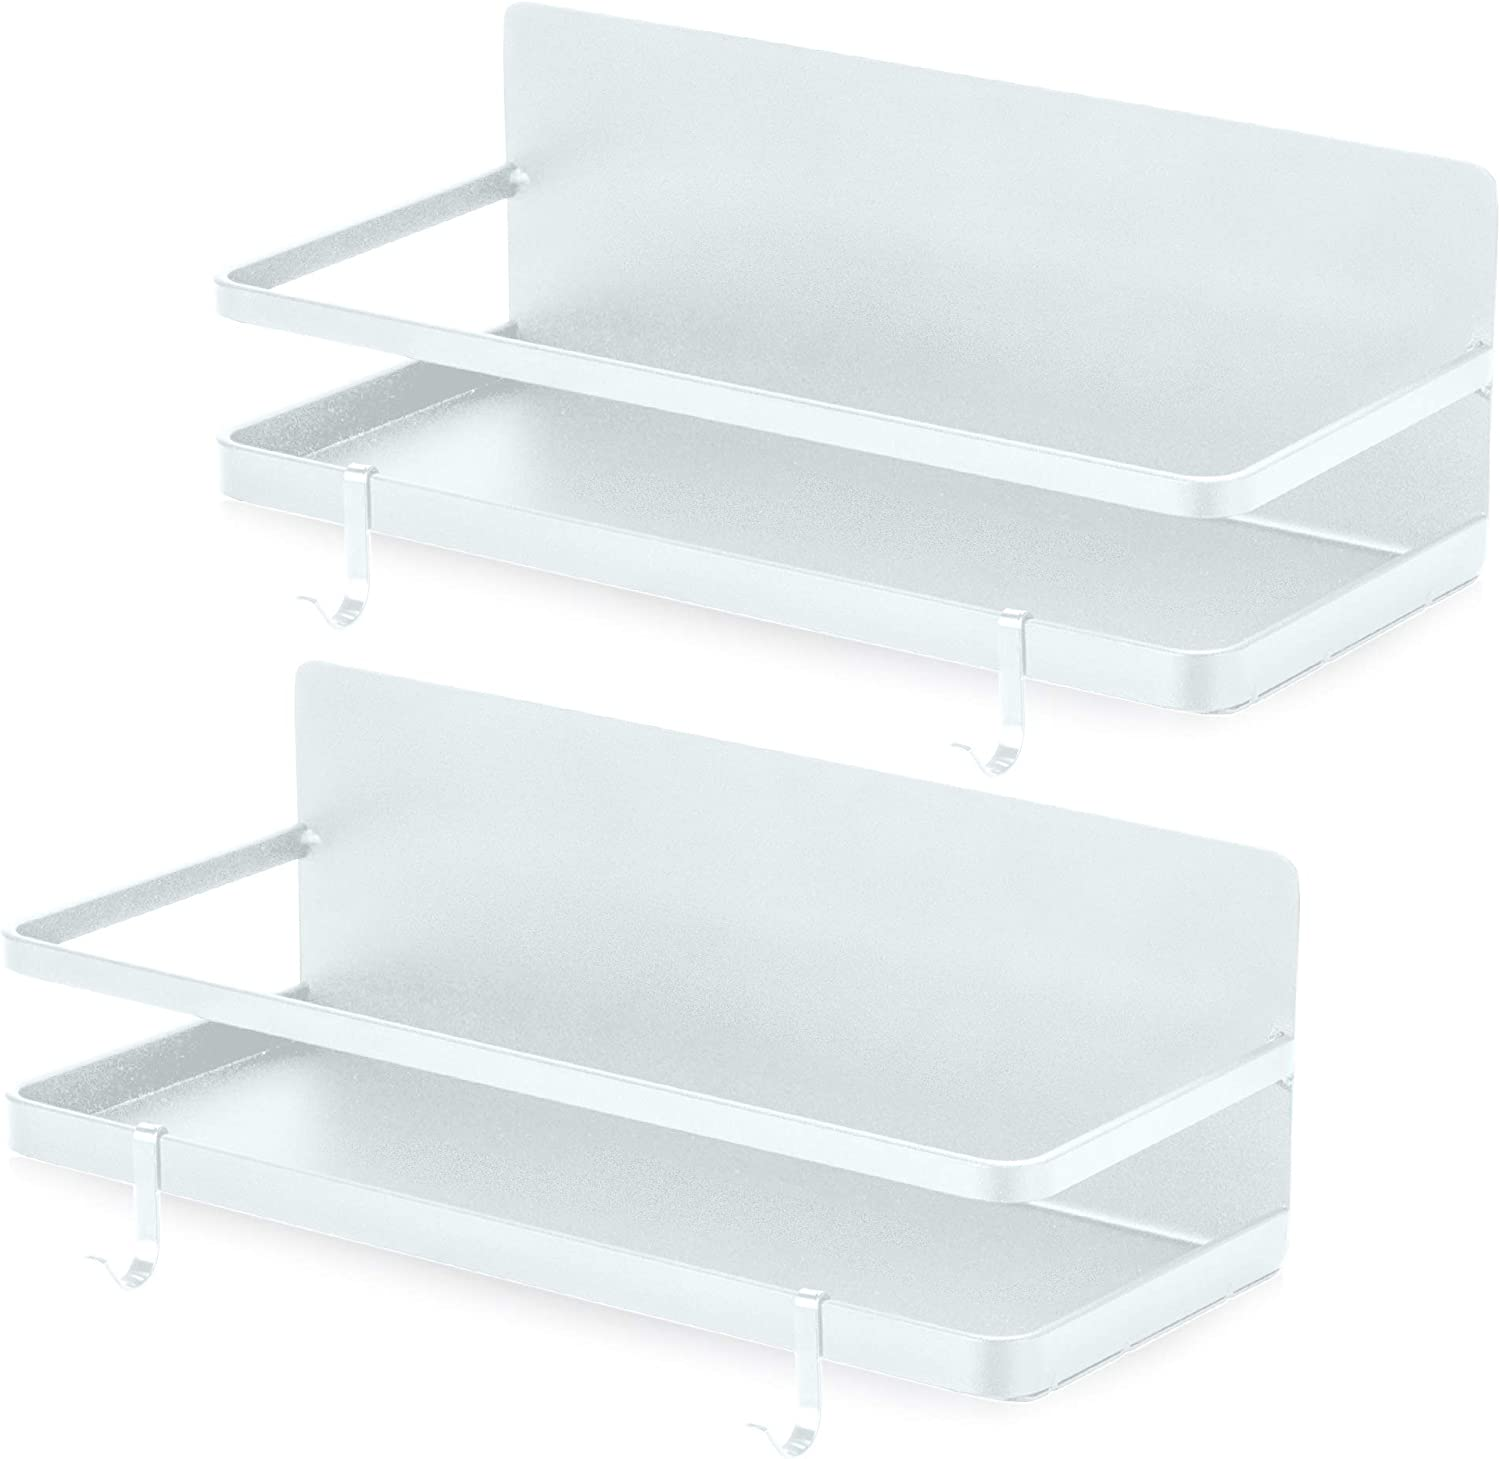 2 Pack - Magnetic Spice Rack, Fridge Organizer Shelf, Side Wall Refrigerator Storage for Spices, Utensils or Plates, Works as Towel Holder with Hooks, Organization for Home and Kitchen (White)